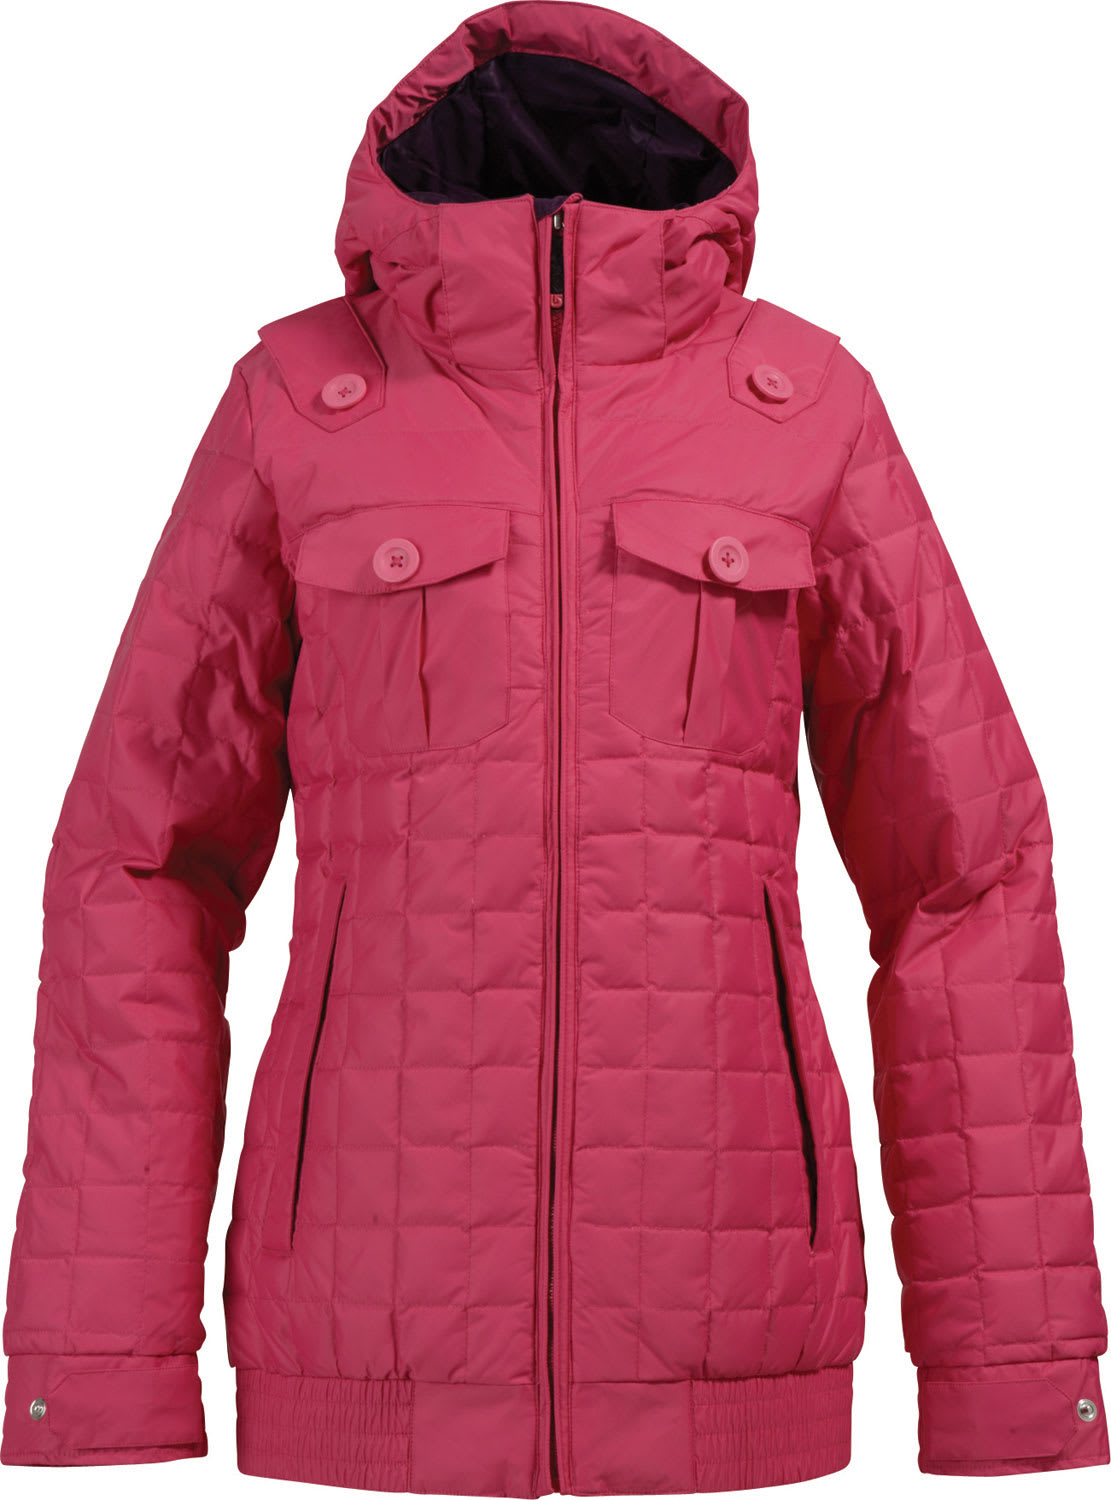 Shop for Burton Bliss Down Snowboard Jacket Rio Pink - Women's